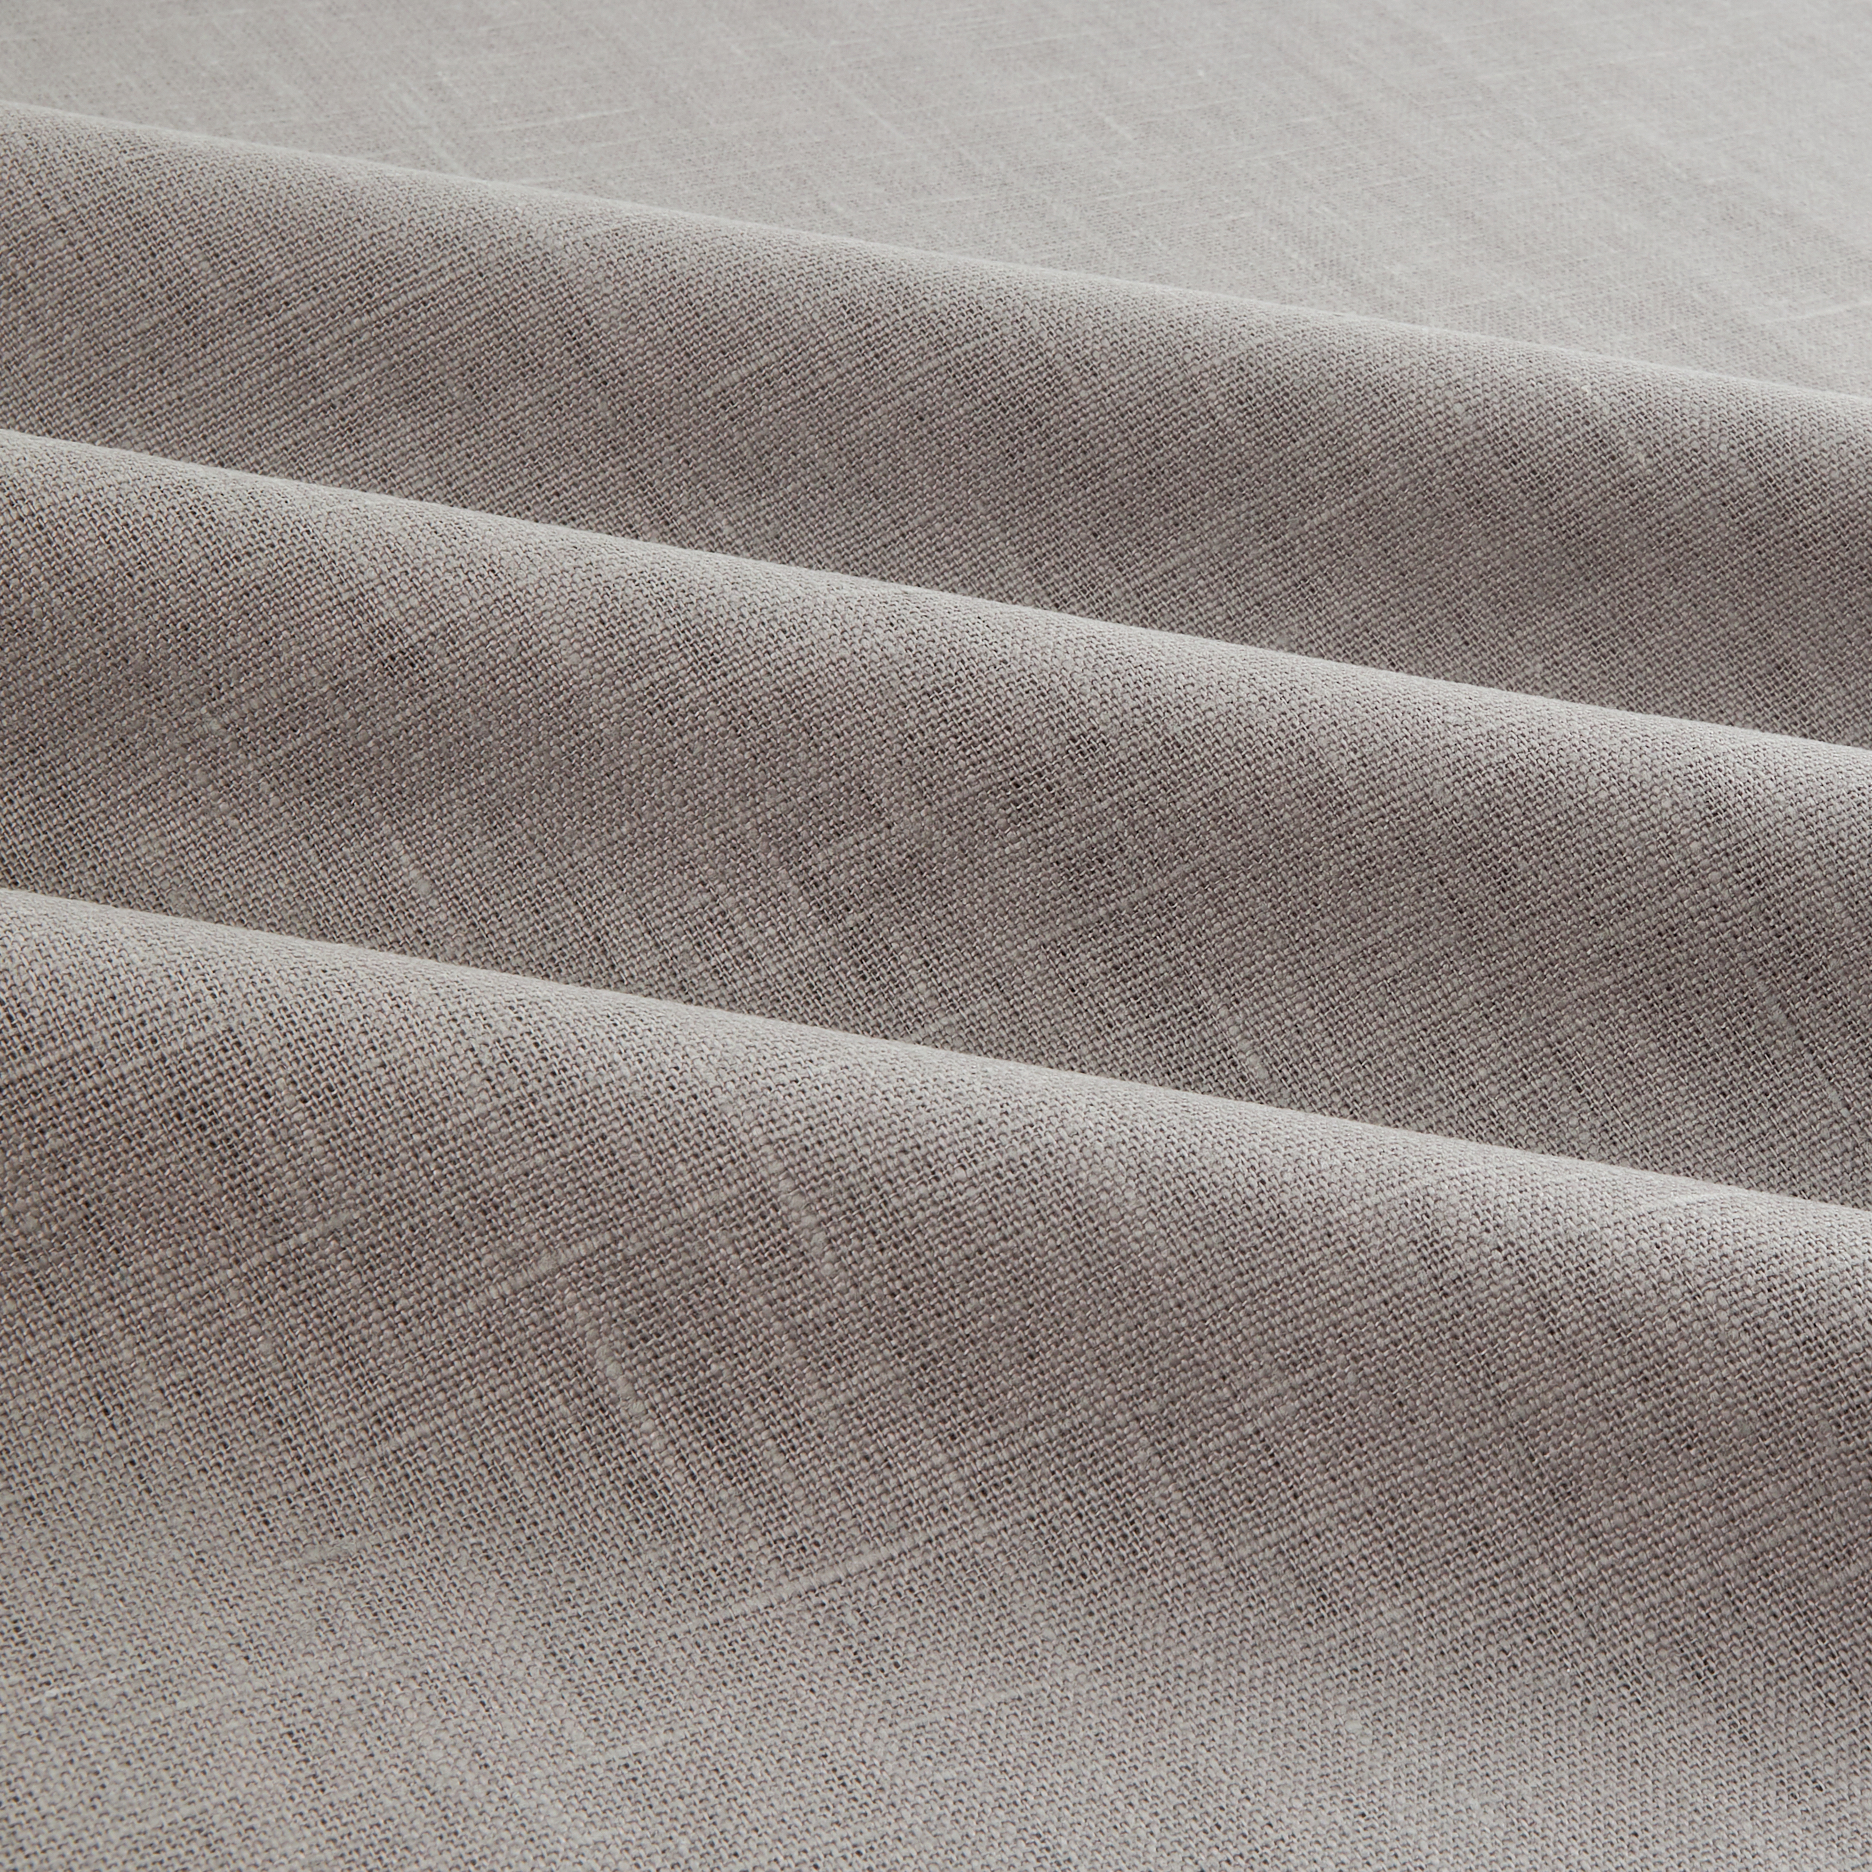 Image of European 100% Washed Linen Steel Fabric